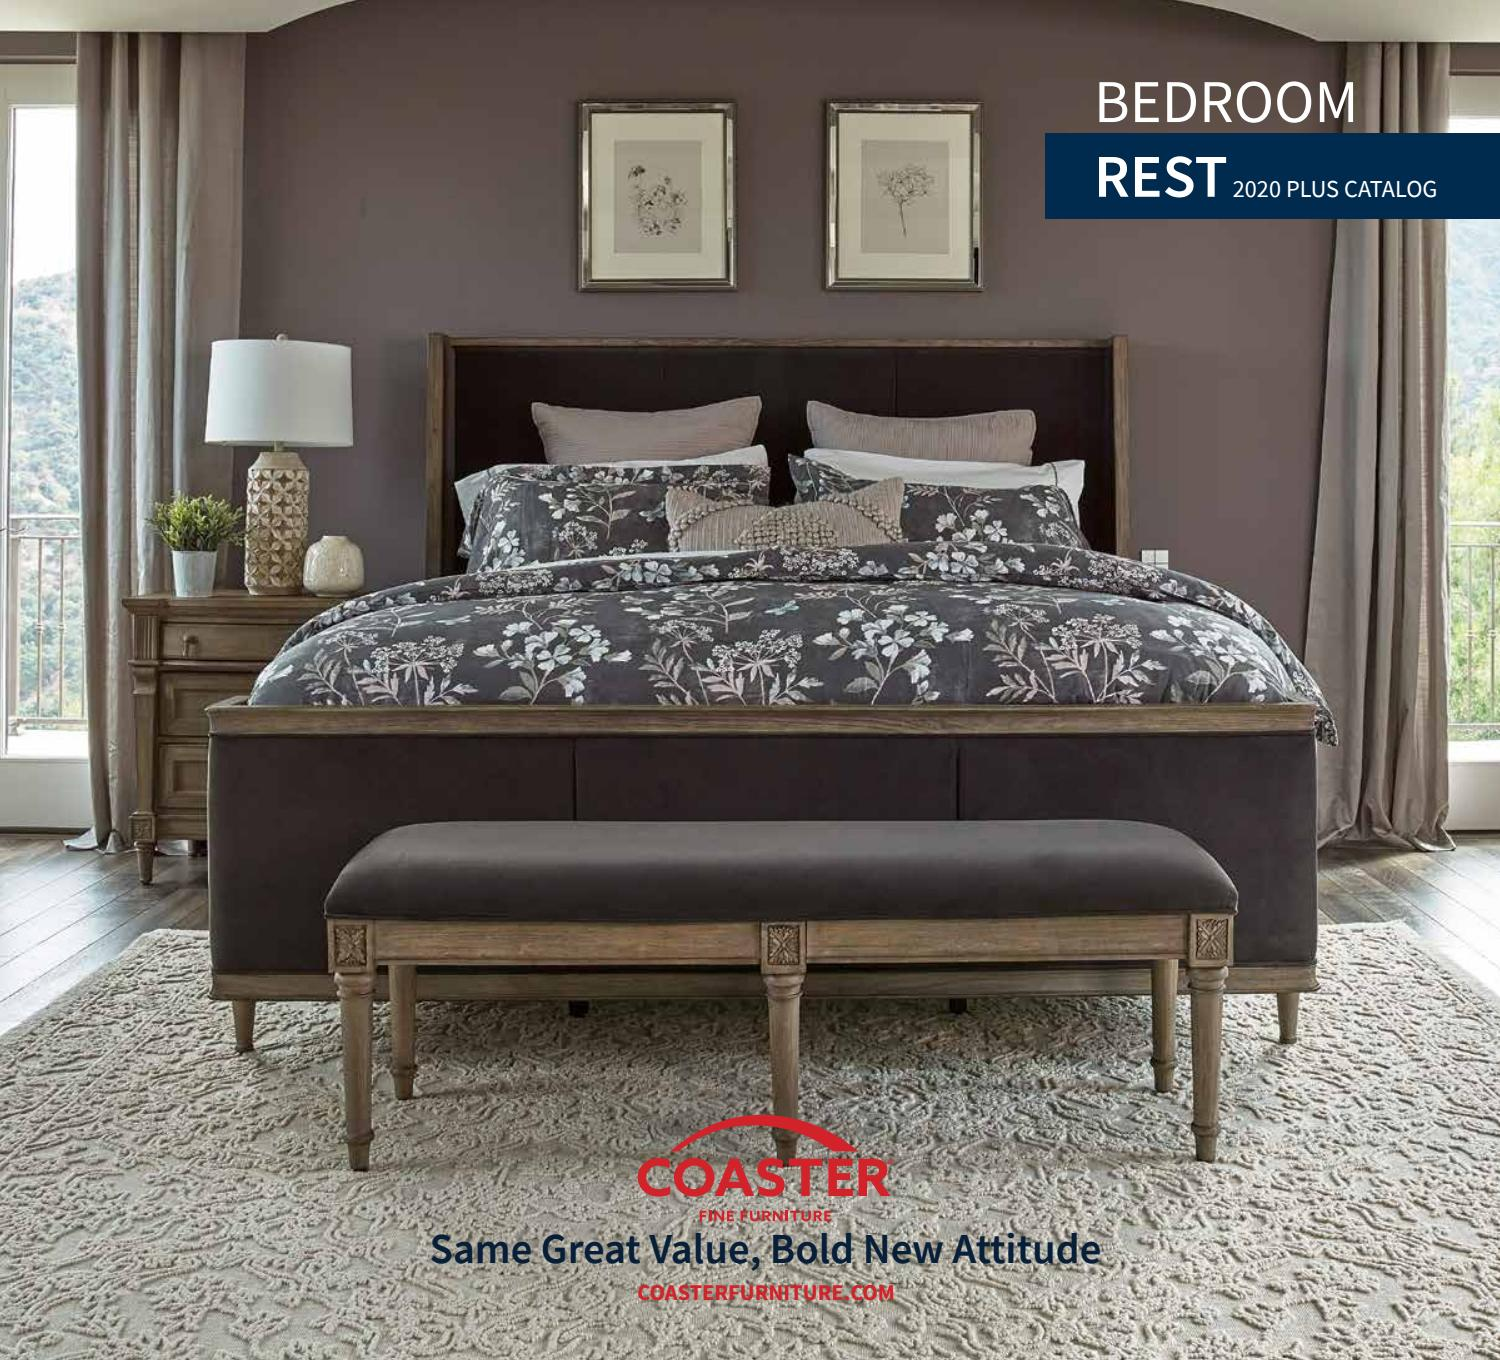 Coaster 2020 Plus Bedroom Catalog Rest By Coaster Company Of America Issuu Download coaster bedroom furniture